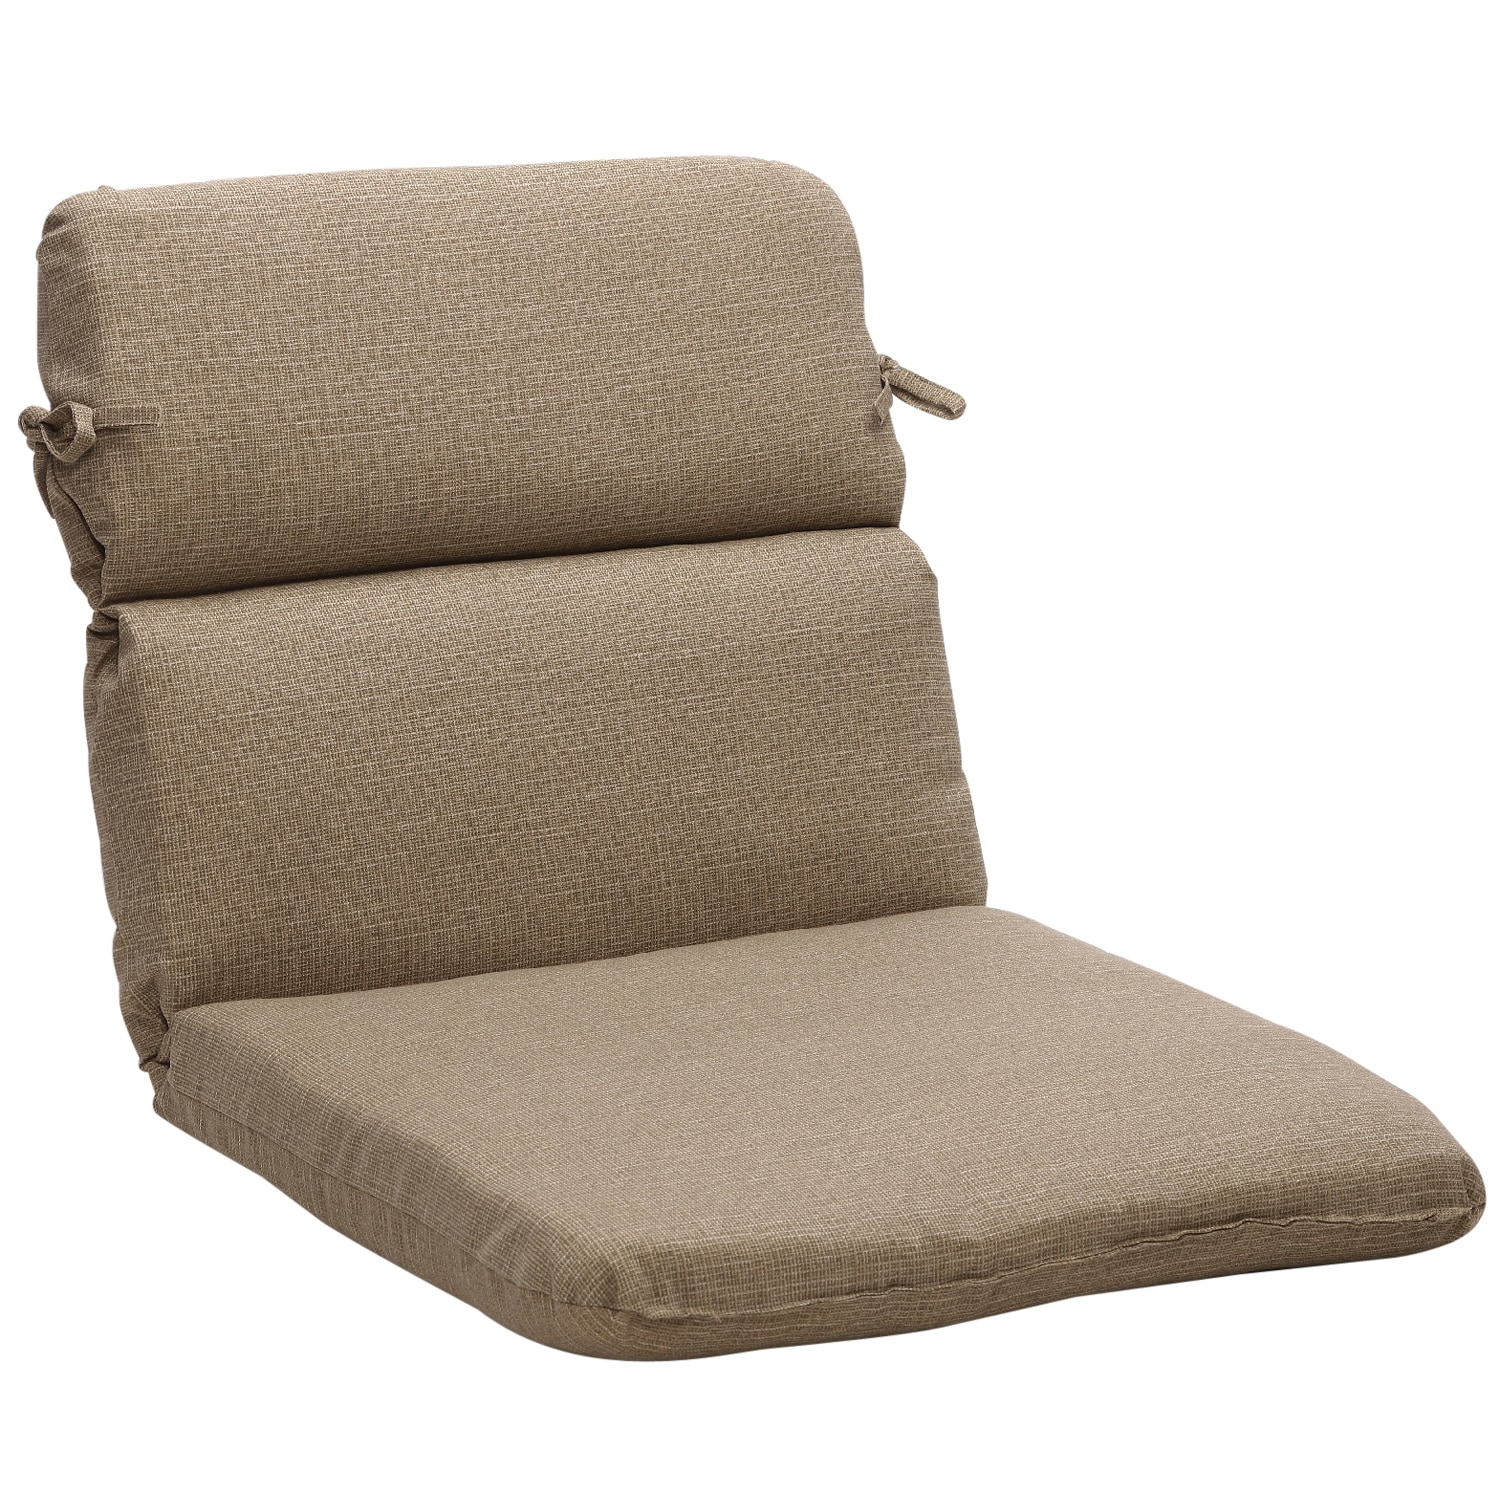 Rounded Solid Taupe Textured Outdoor Chair Cushion